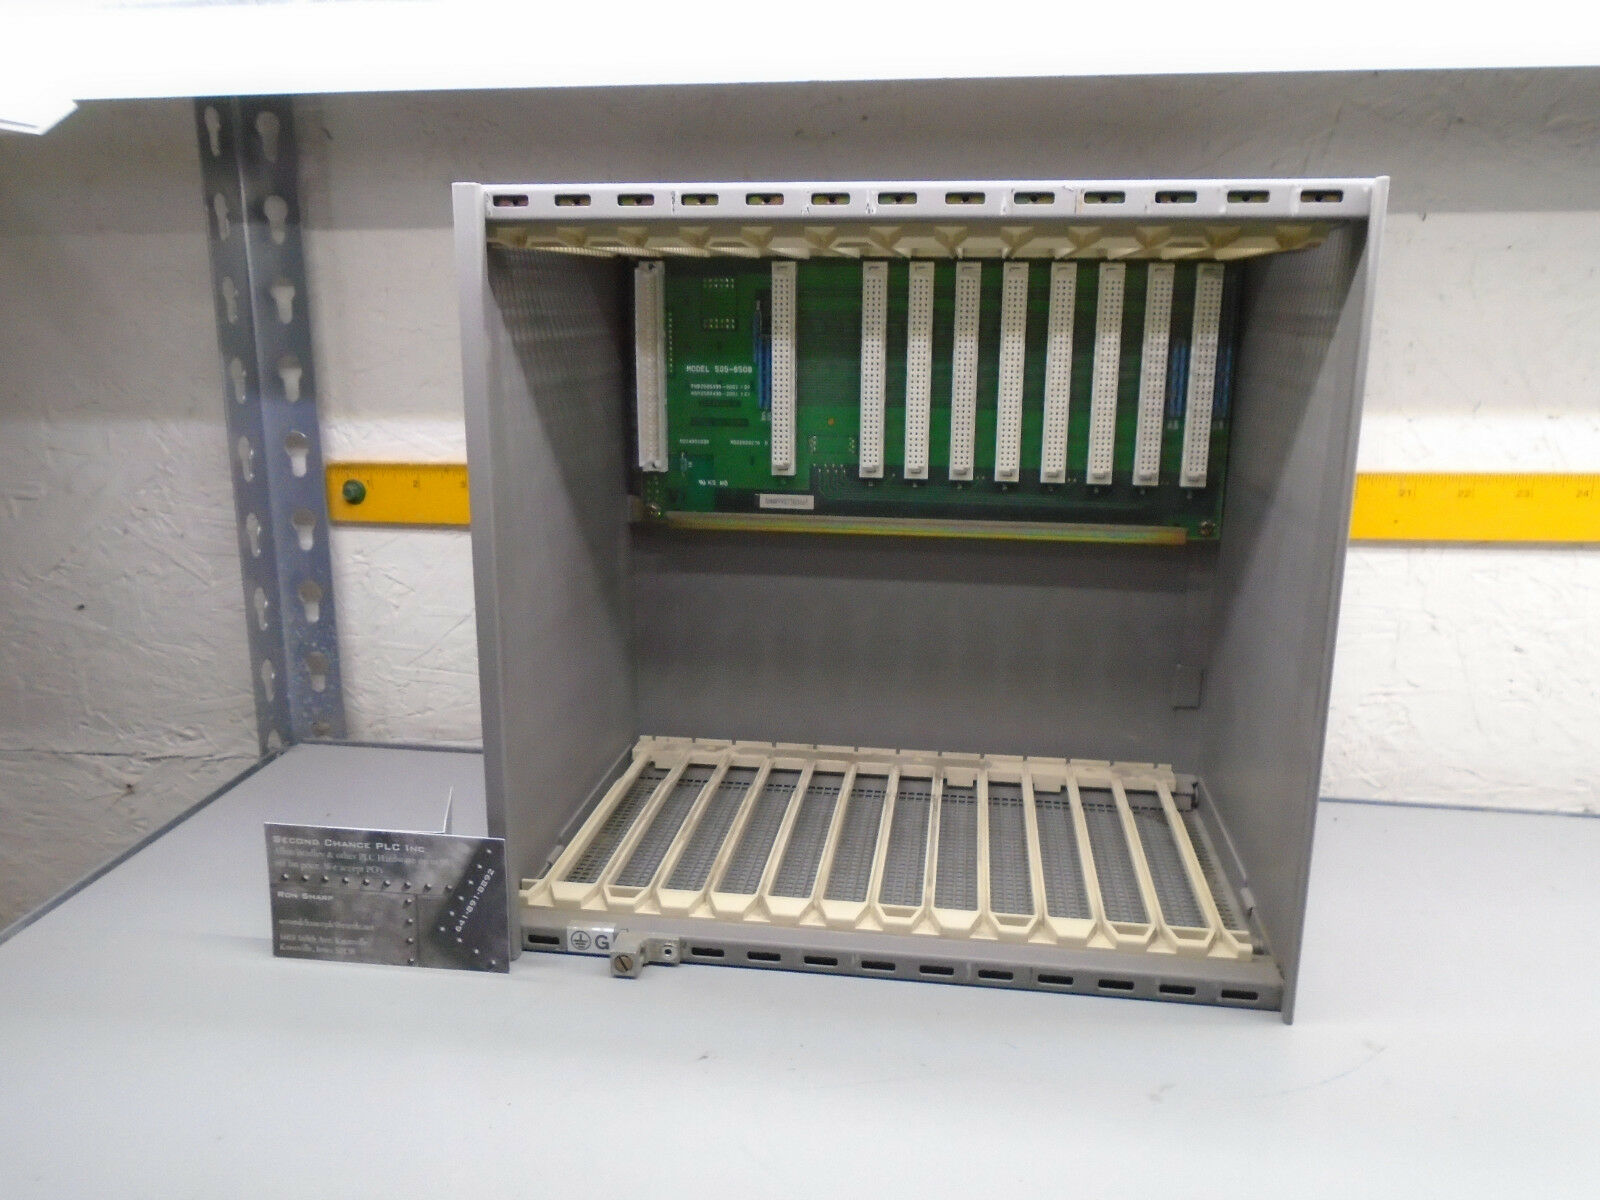 505-6508 Texas Instruments Siemens 505 series Chassis 5056508   W25